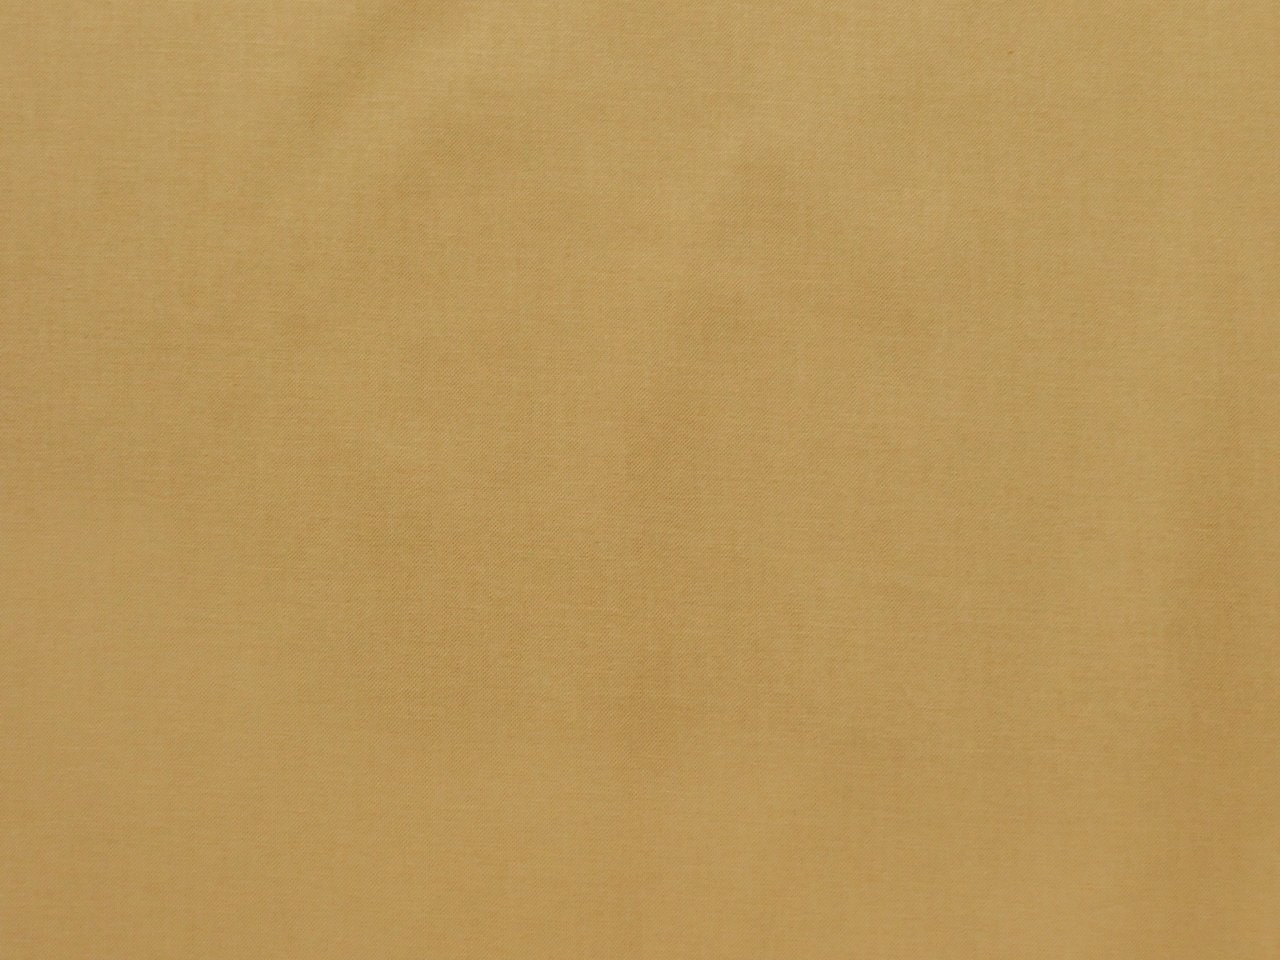 Cotton Fabric Solids Khaki David Textiles